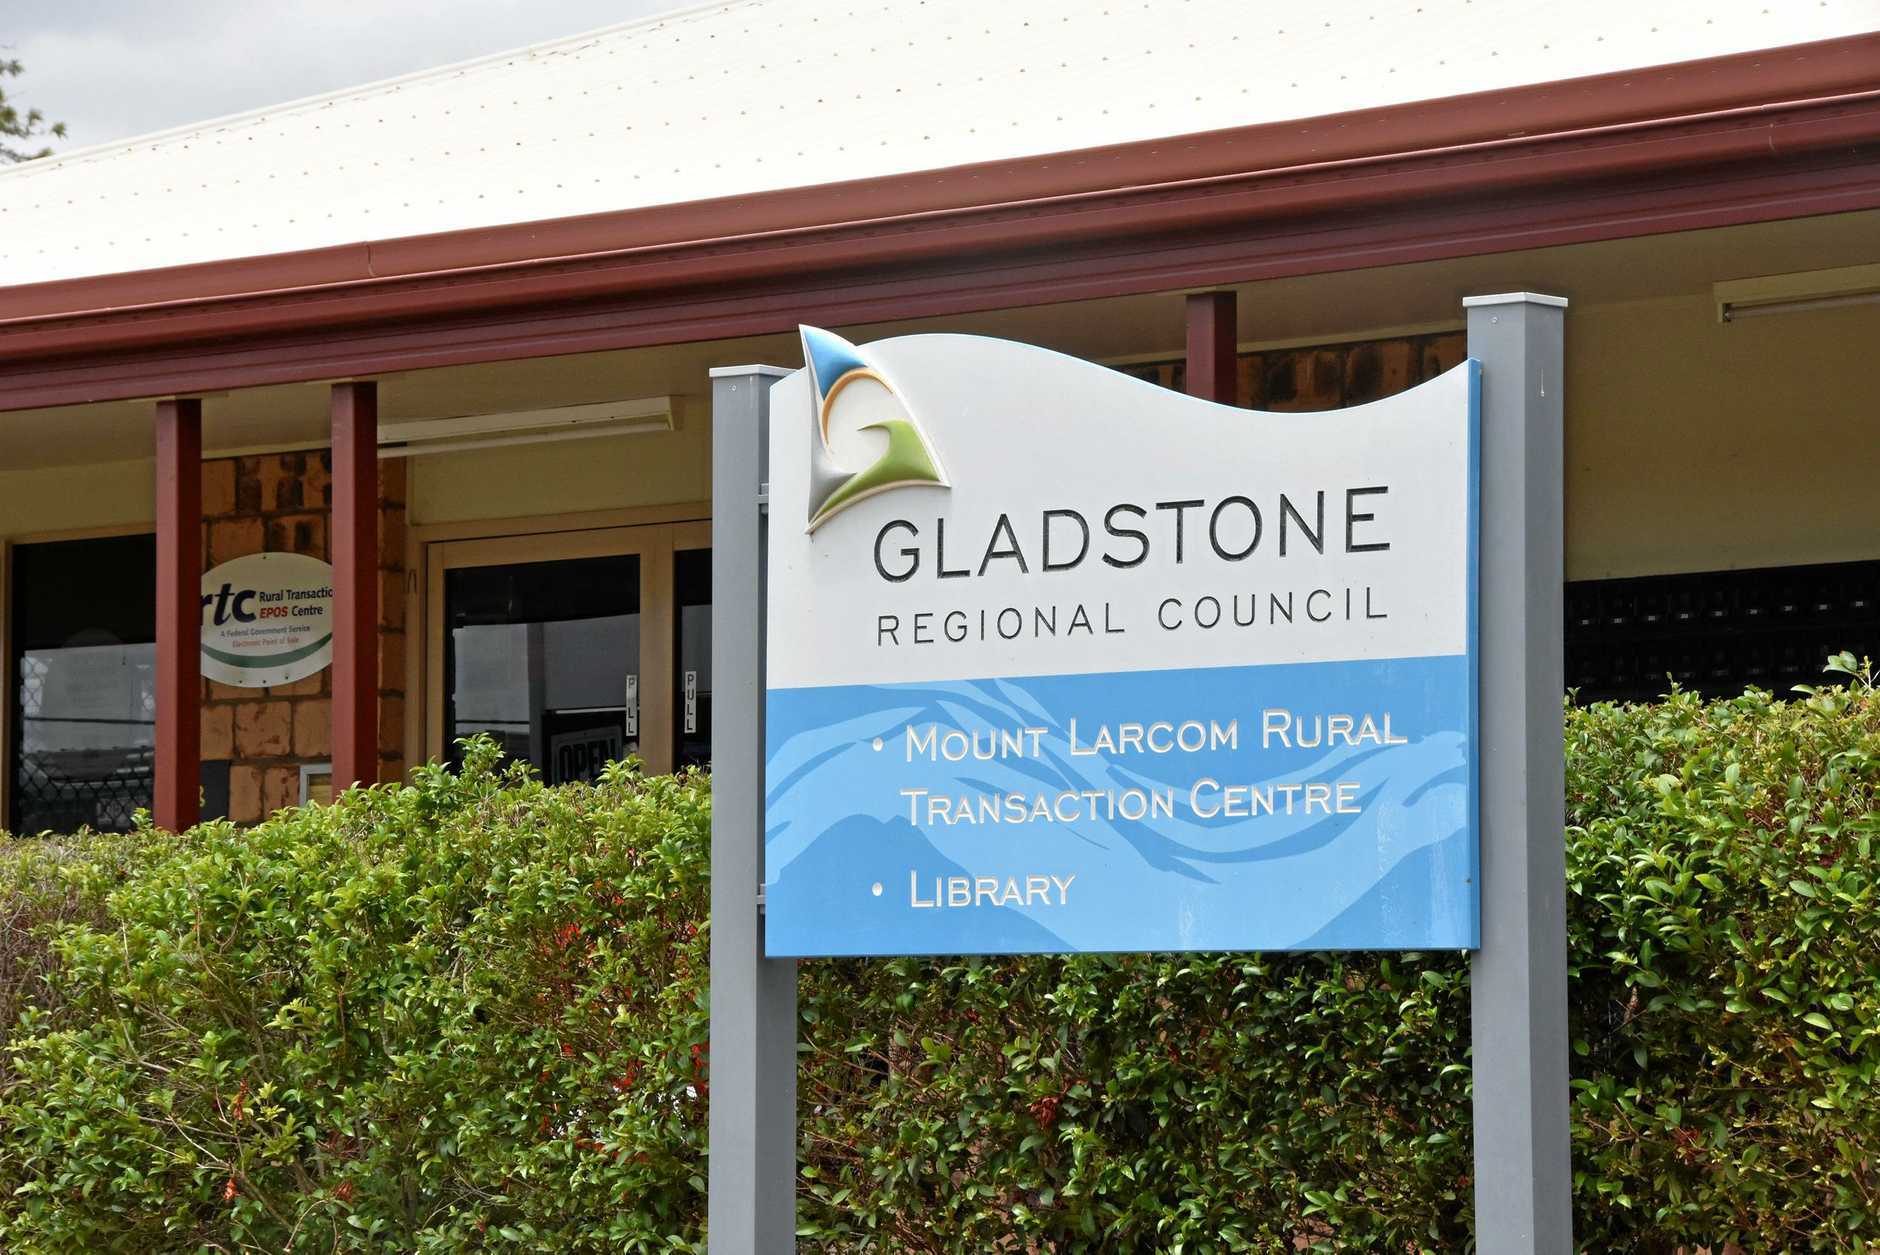 BE HEARD: Mount Larcom Rural Transaction Centre will be the place to be today to meet council representatives.